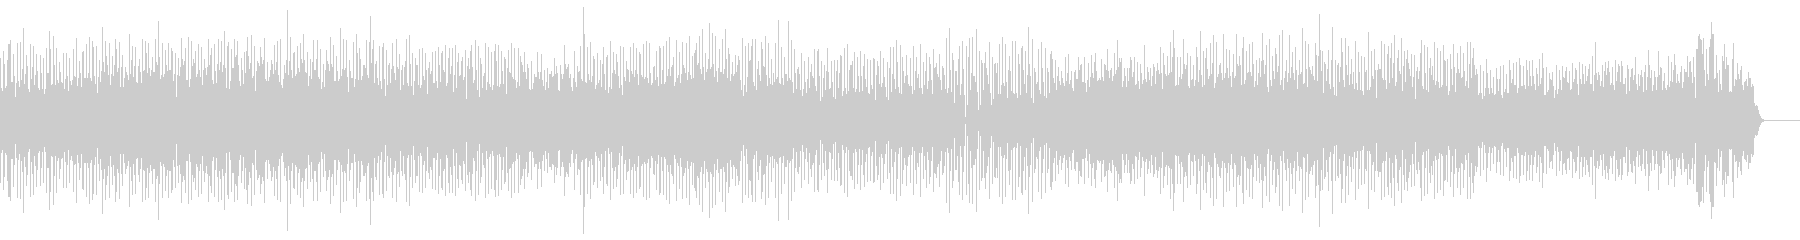 Fashionable and rich melody's unreproduced waveform